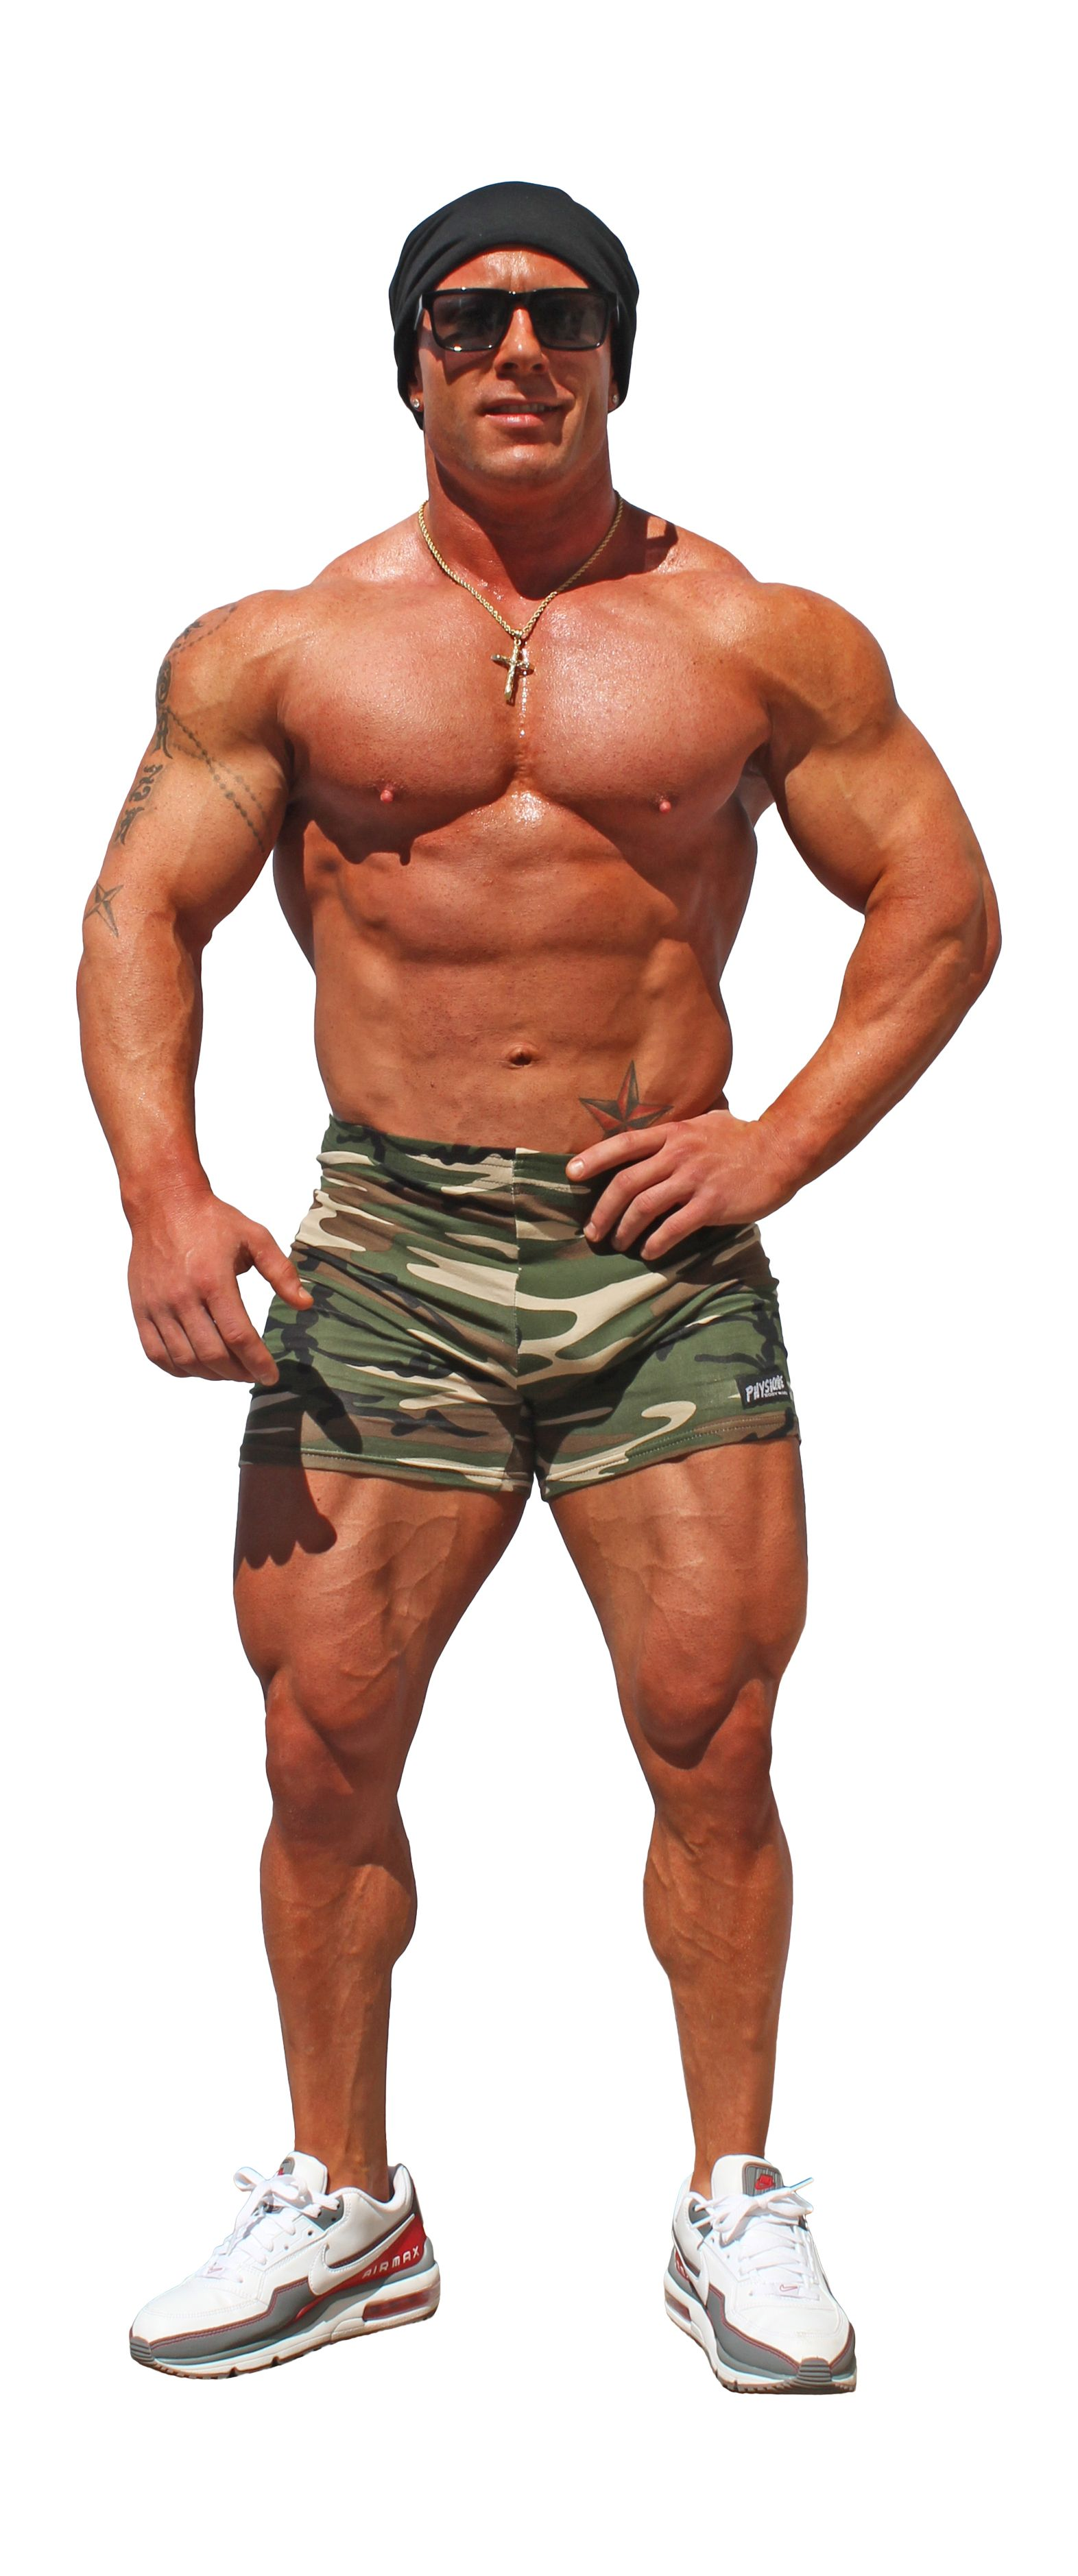 697a9b56a72 Style 776 - Men s Workout Short. Improved Pro Bodybuilder Style   Fit!  Classic Football Style Men s Workout Shorts. Made in America. Lowest Price!